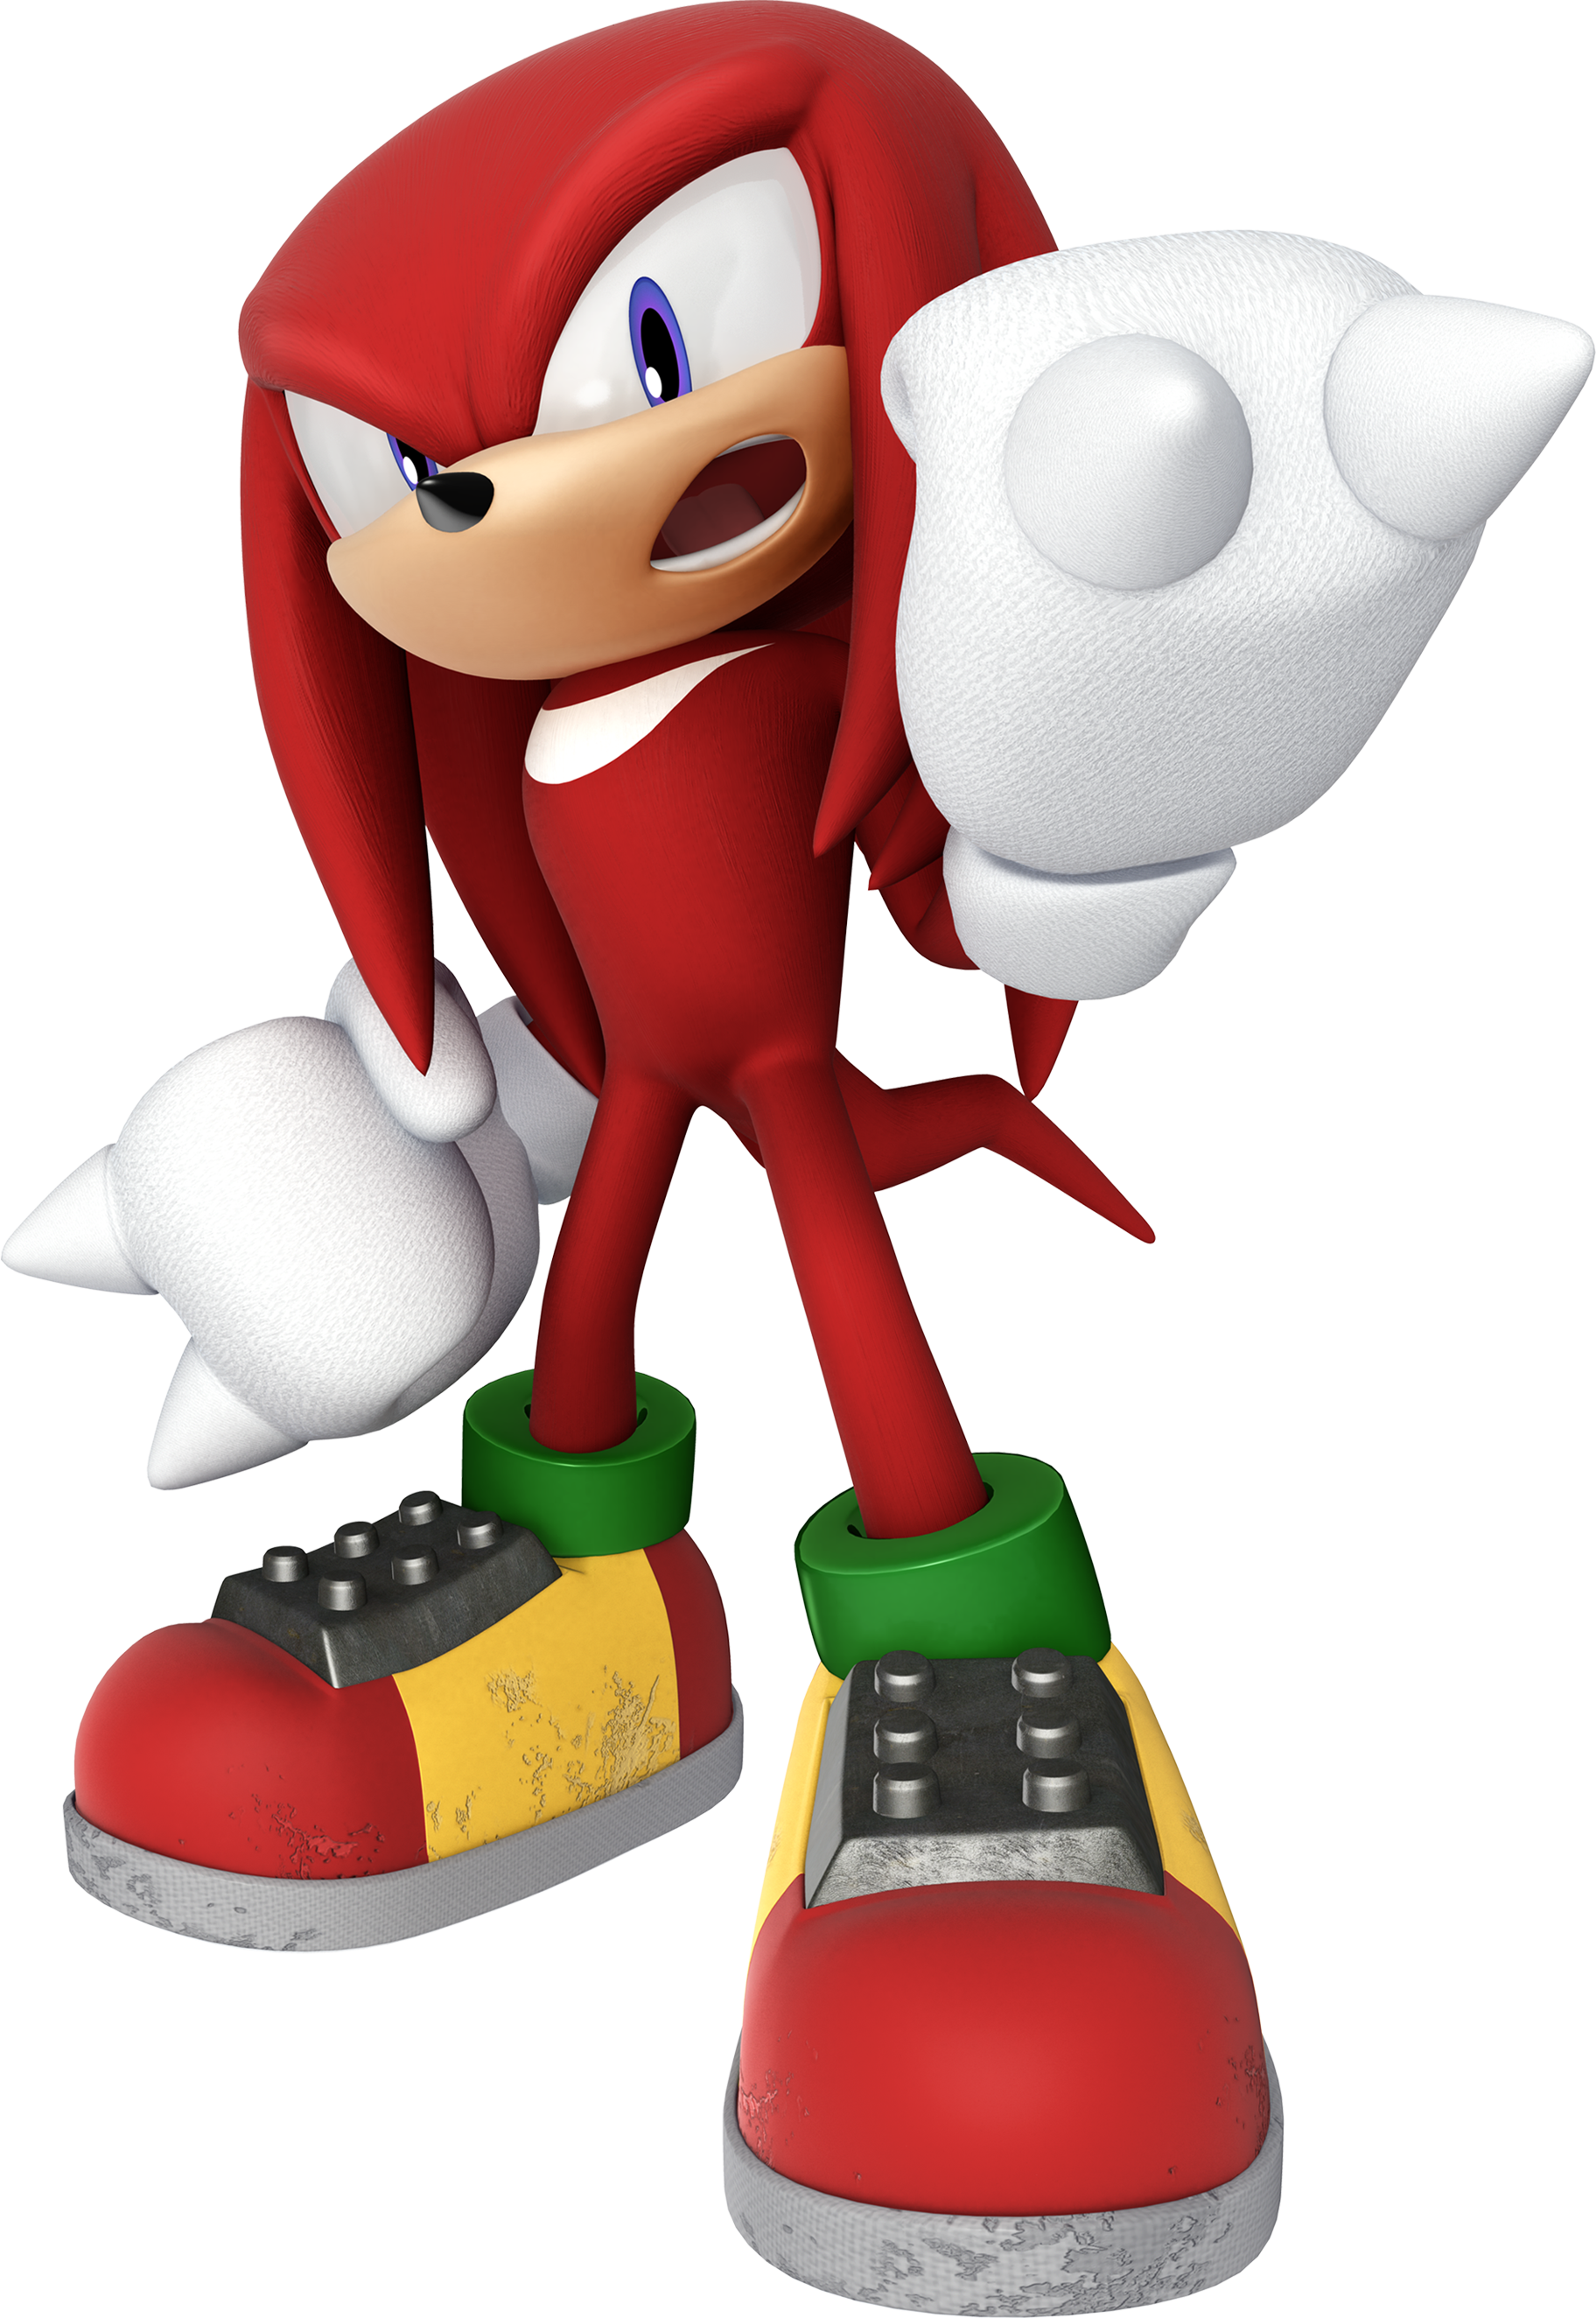 knuckles sonic the heghog wiki fandom powered by wikia